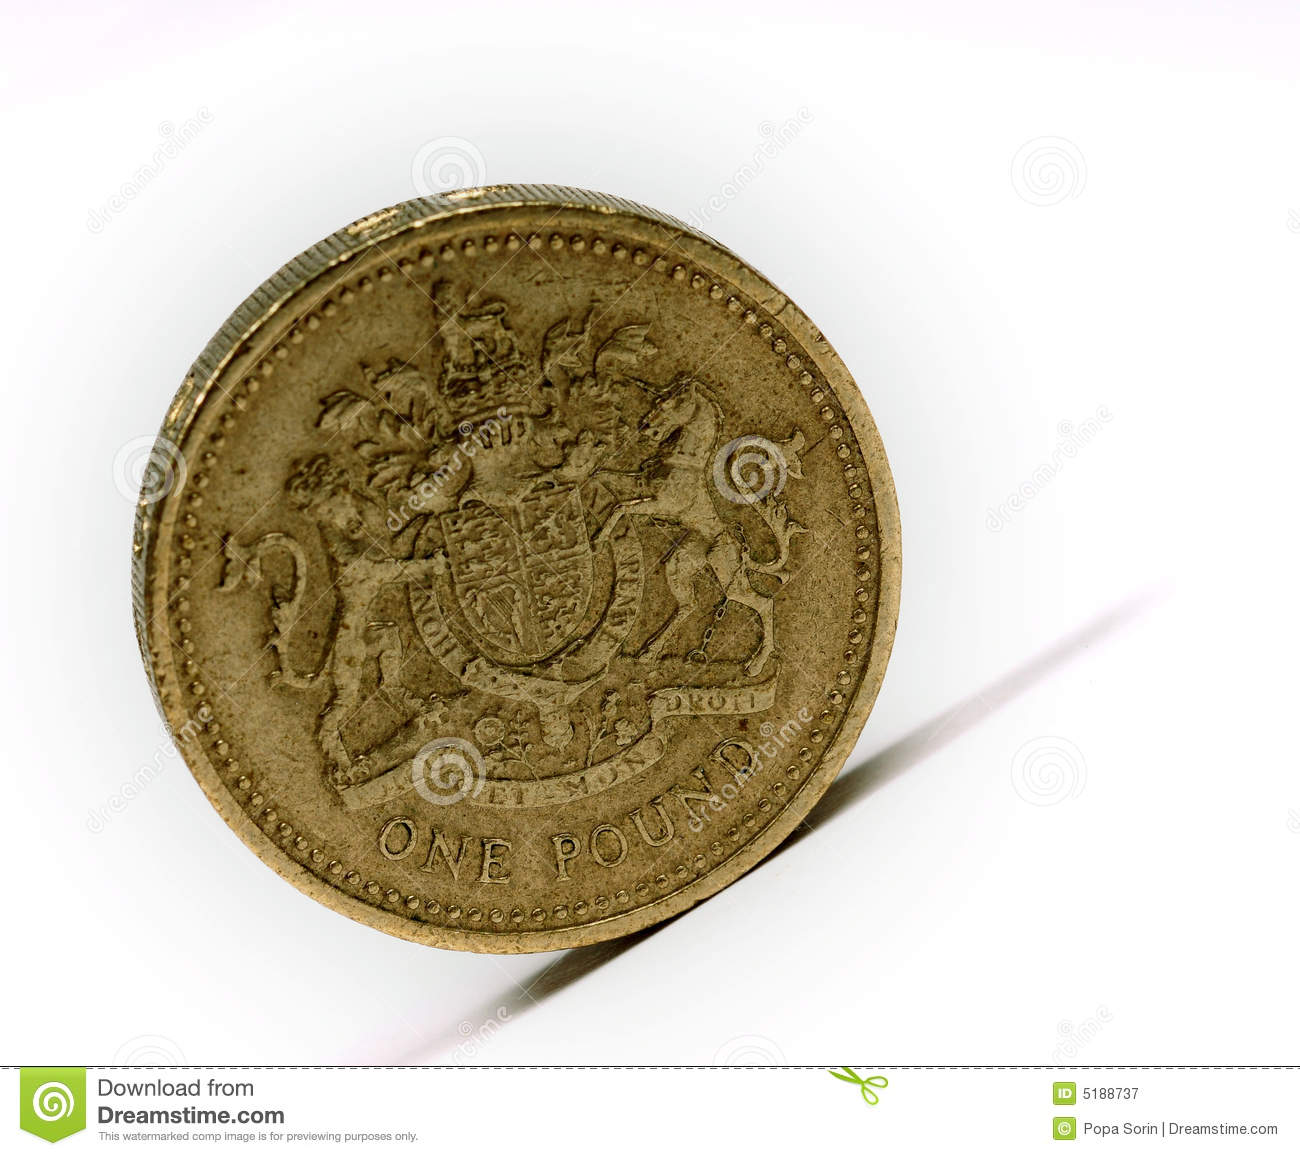 イギリスポンド... Free Stock Photography: One pound sterling